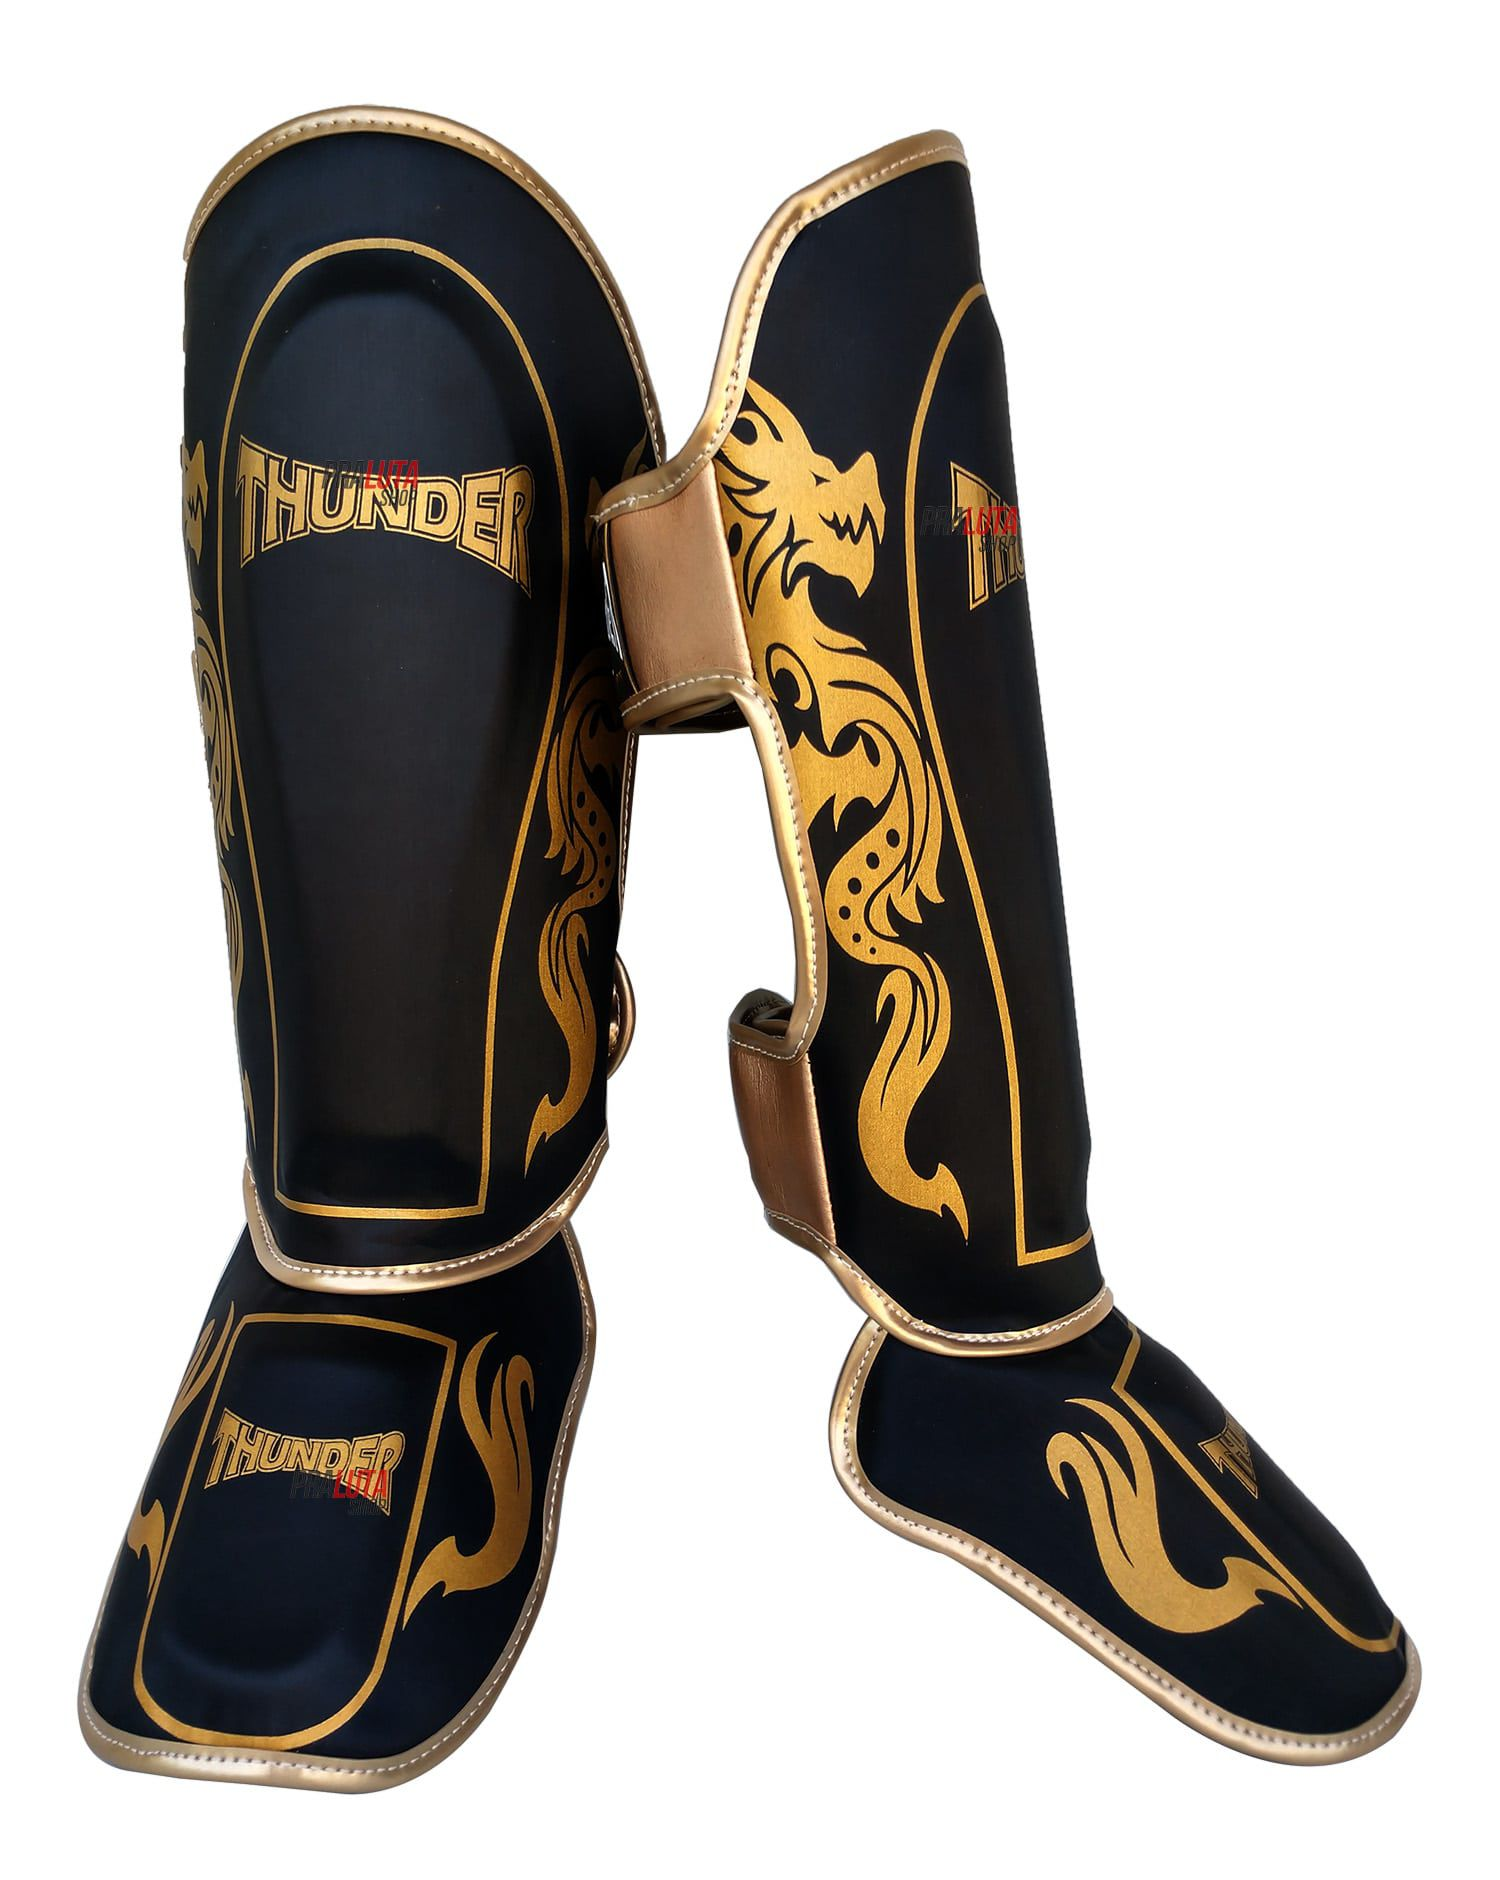 Caneleira Muay Thai MMA Dragão Preto com Dourado Grande 30mm - Thunder Fight - PRALUTA SHOP